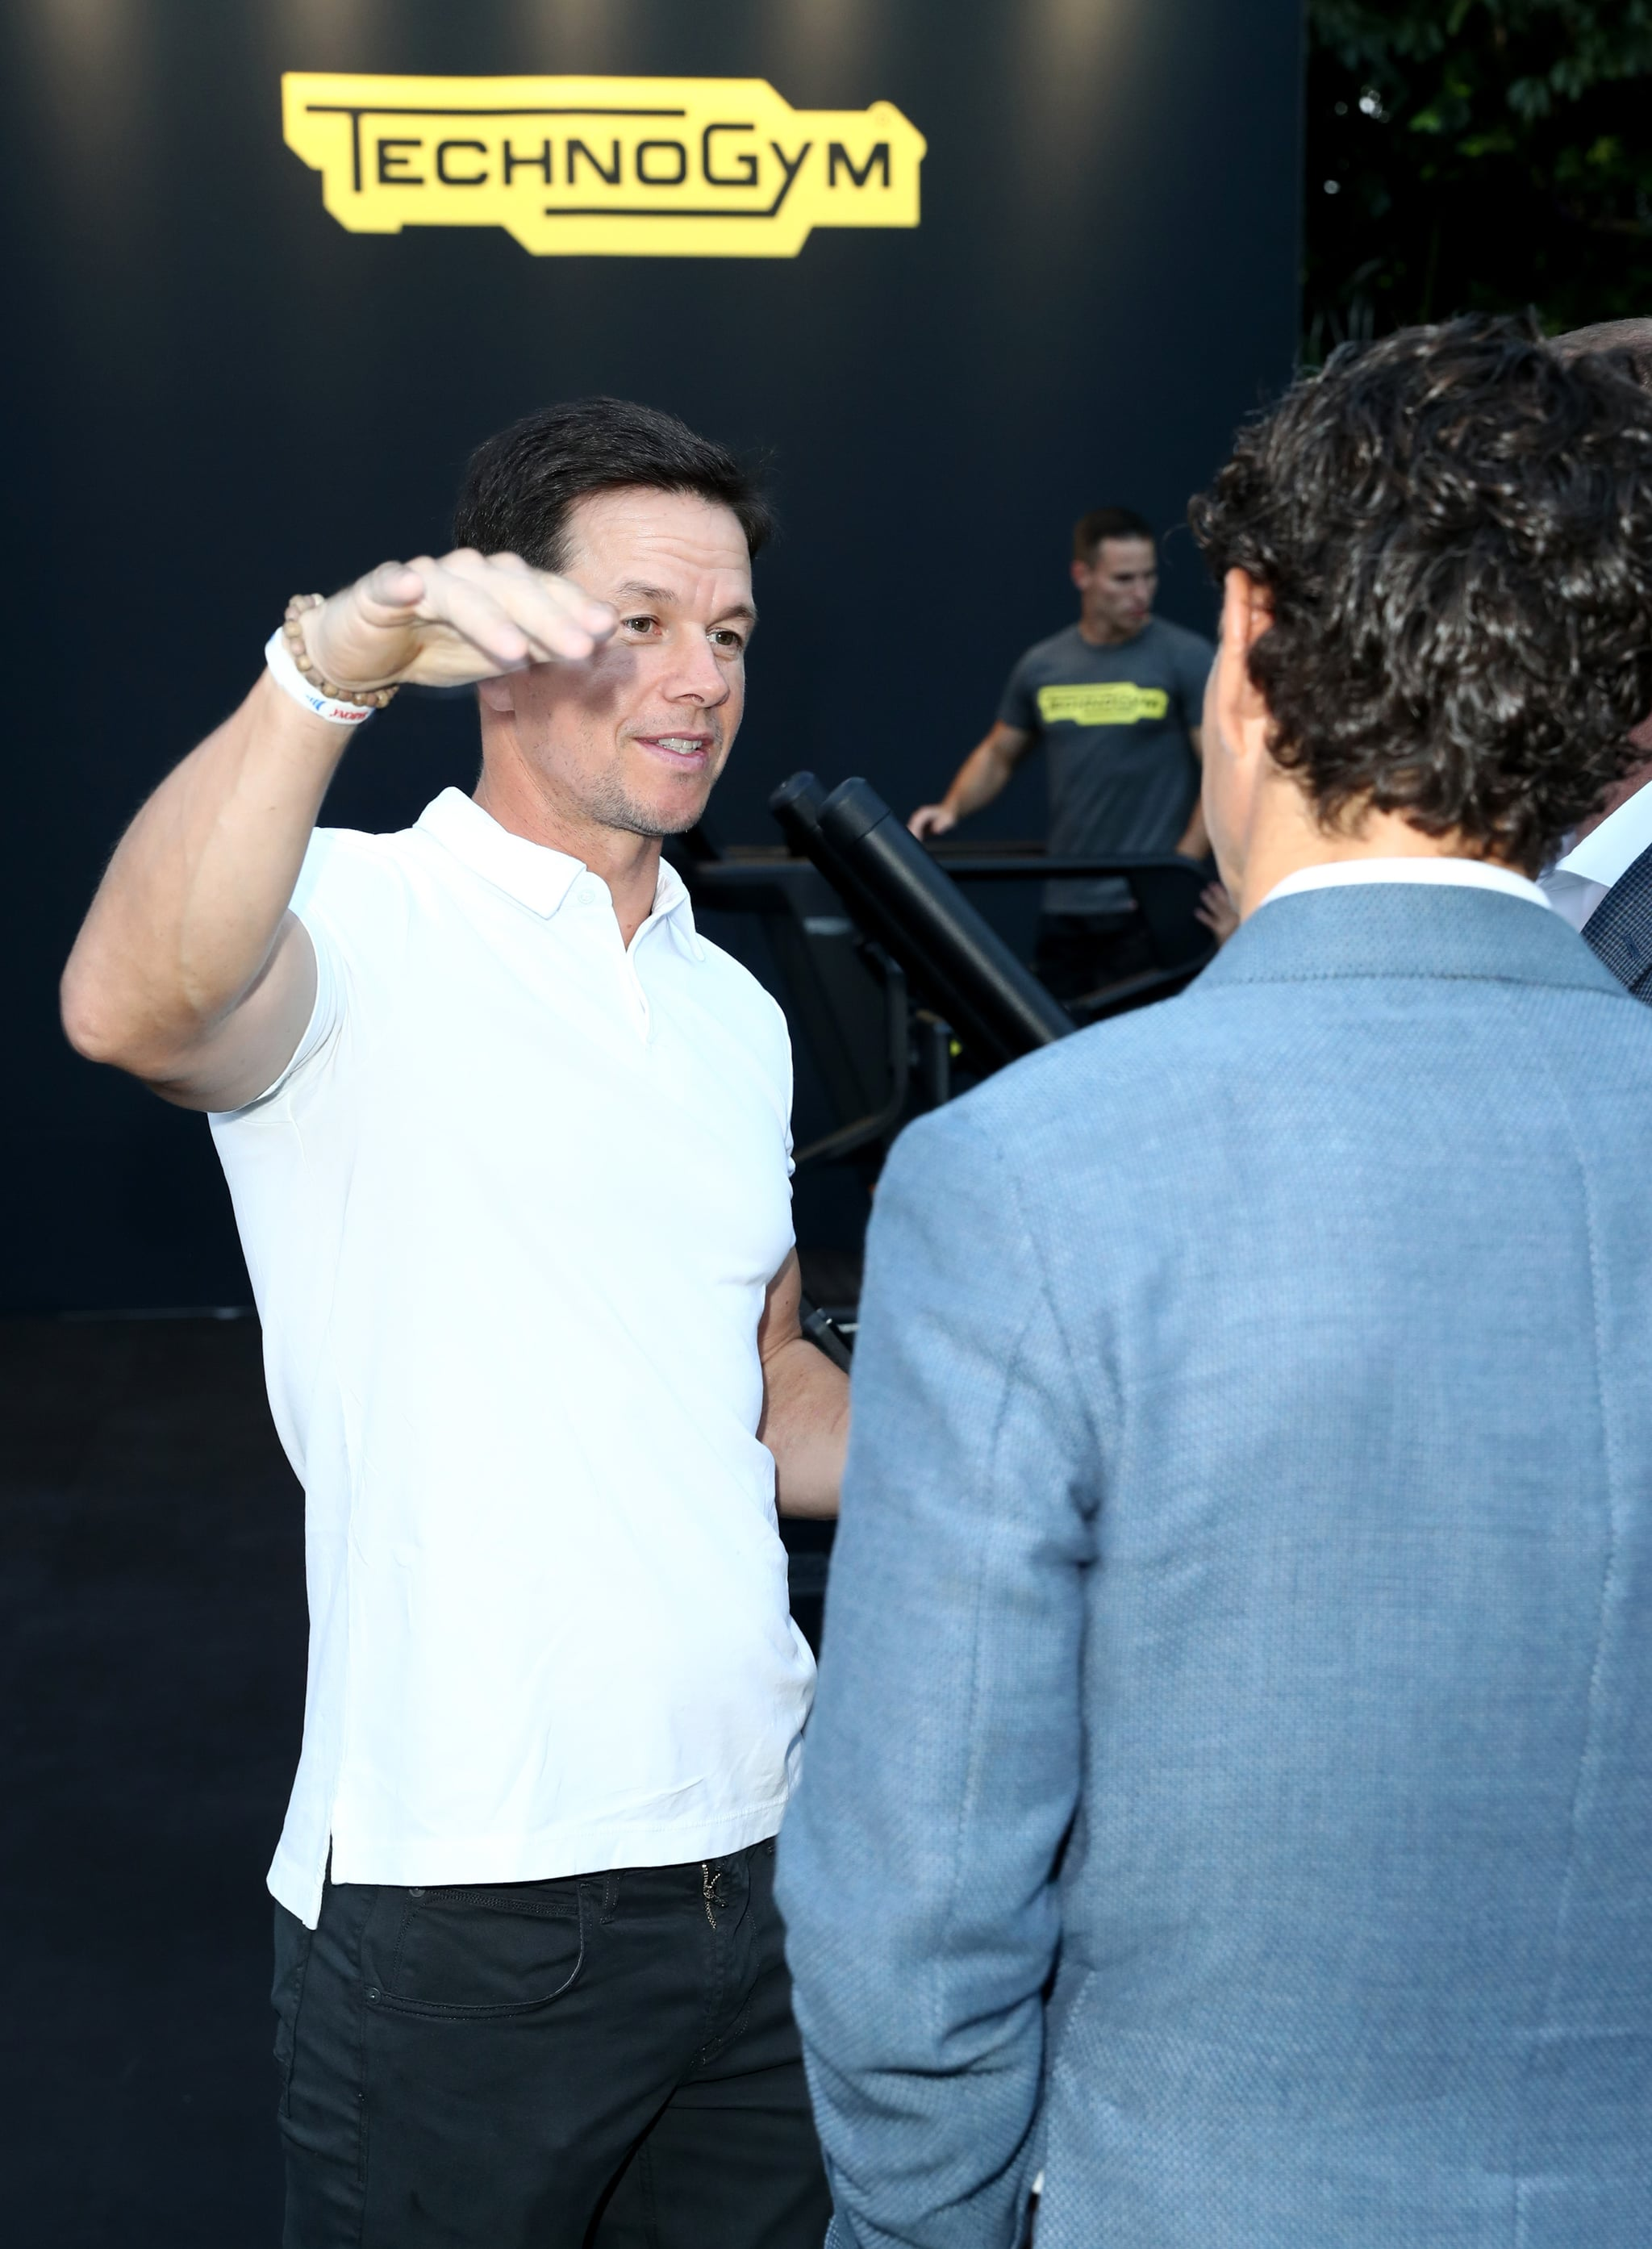 BEVERLY HILLS, CA - AUGUST 30:  Mark Wahlberg attends Rolls Royce X Technogym at the home of Gunnar Peterson on August 30, 2018 in Beverly Hills, California.  (Photo by Joe Scarnici/Getty Images for Technogym)